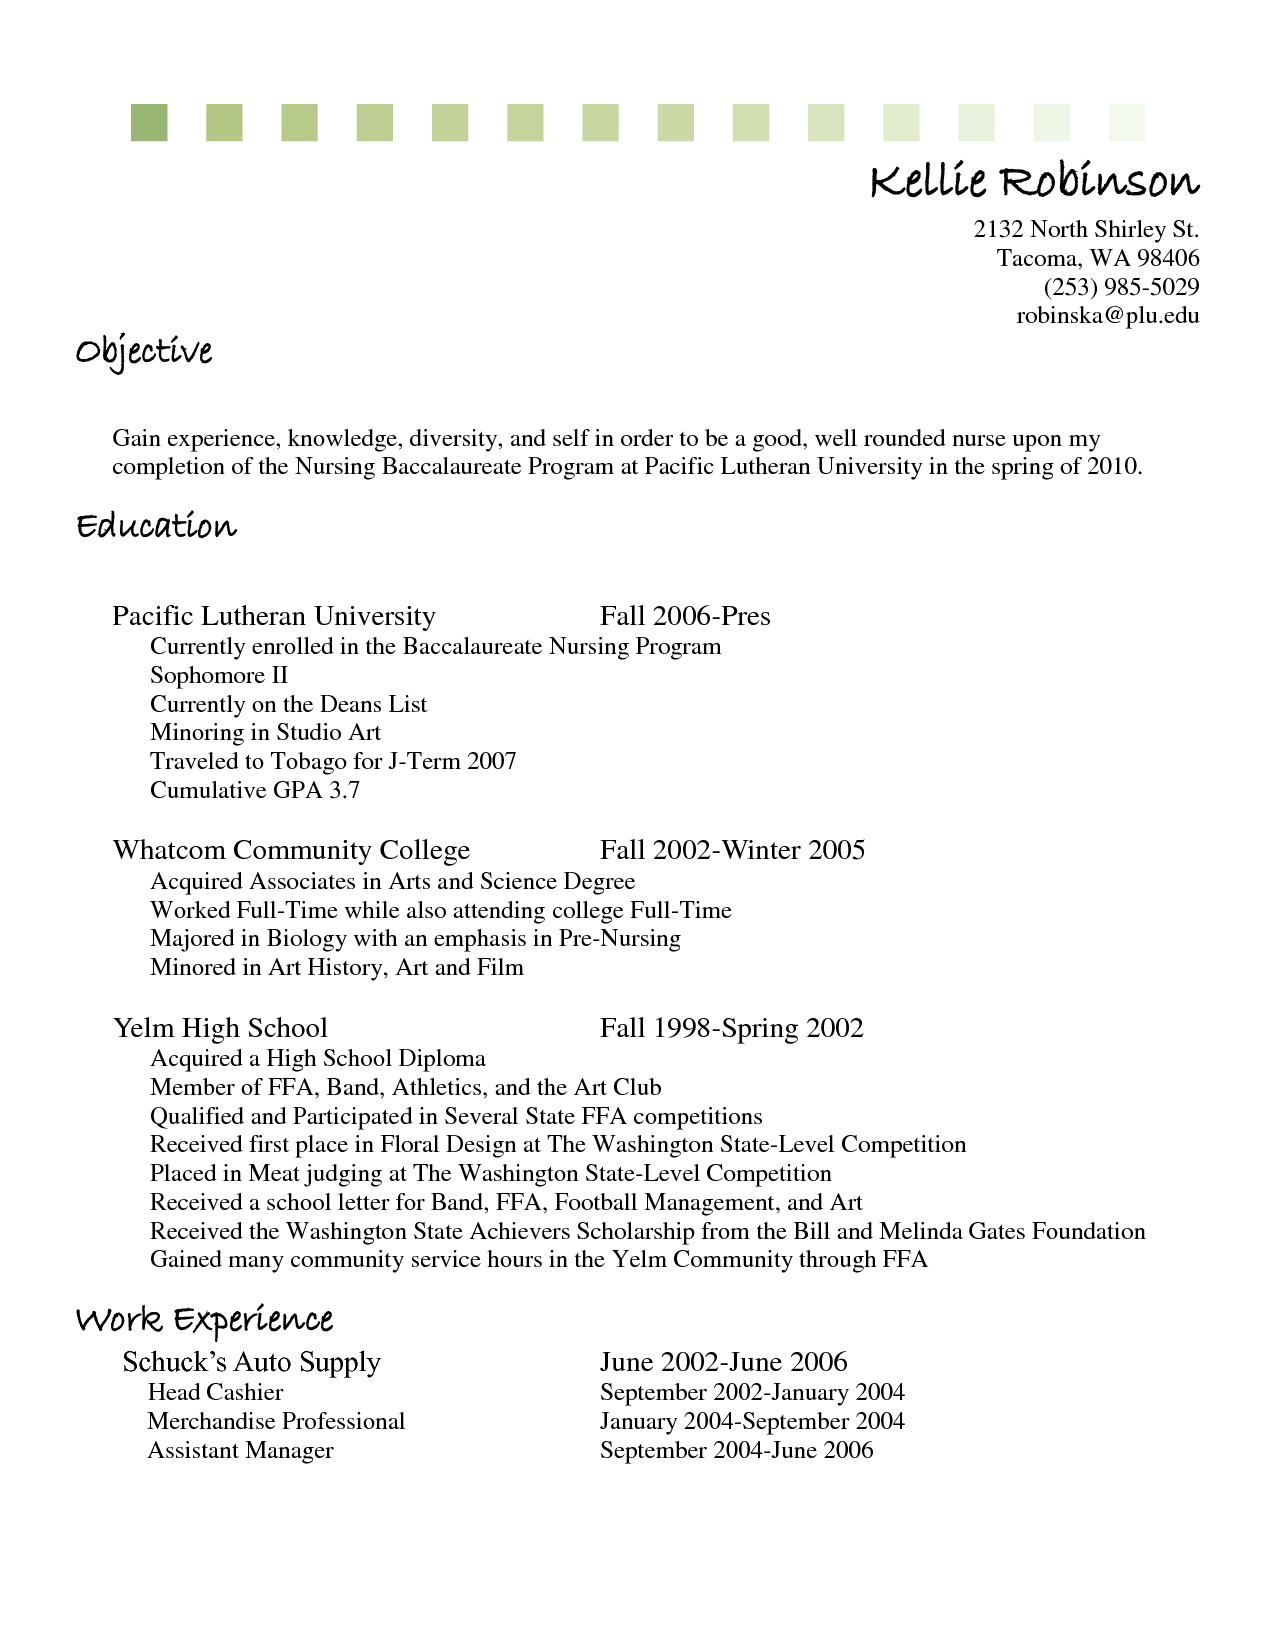 example resume cashier job sample cover retail jobs letter - Retail Job Resume Objective